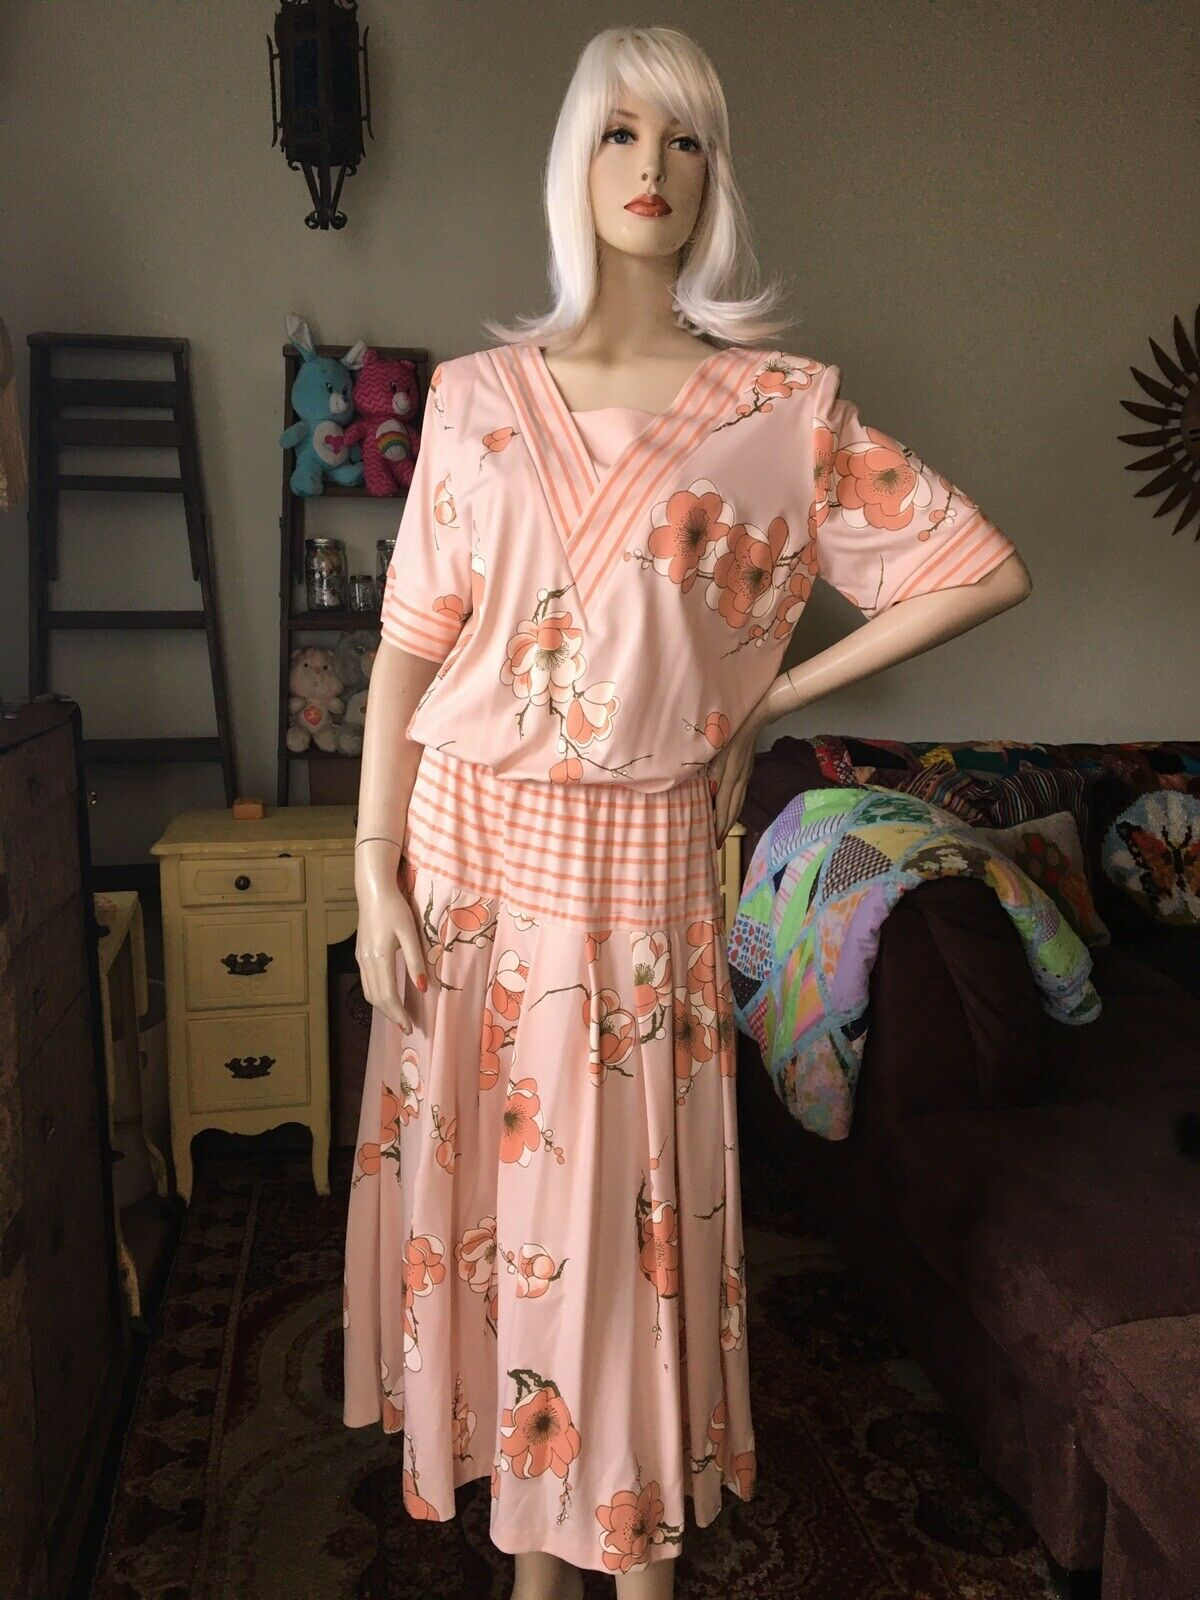 Vintage 1980's Alfred Shaheen Dress - image 1